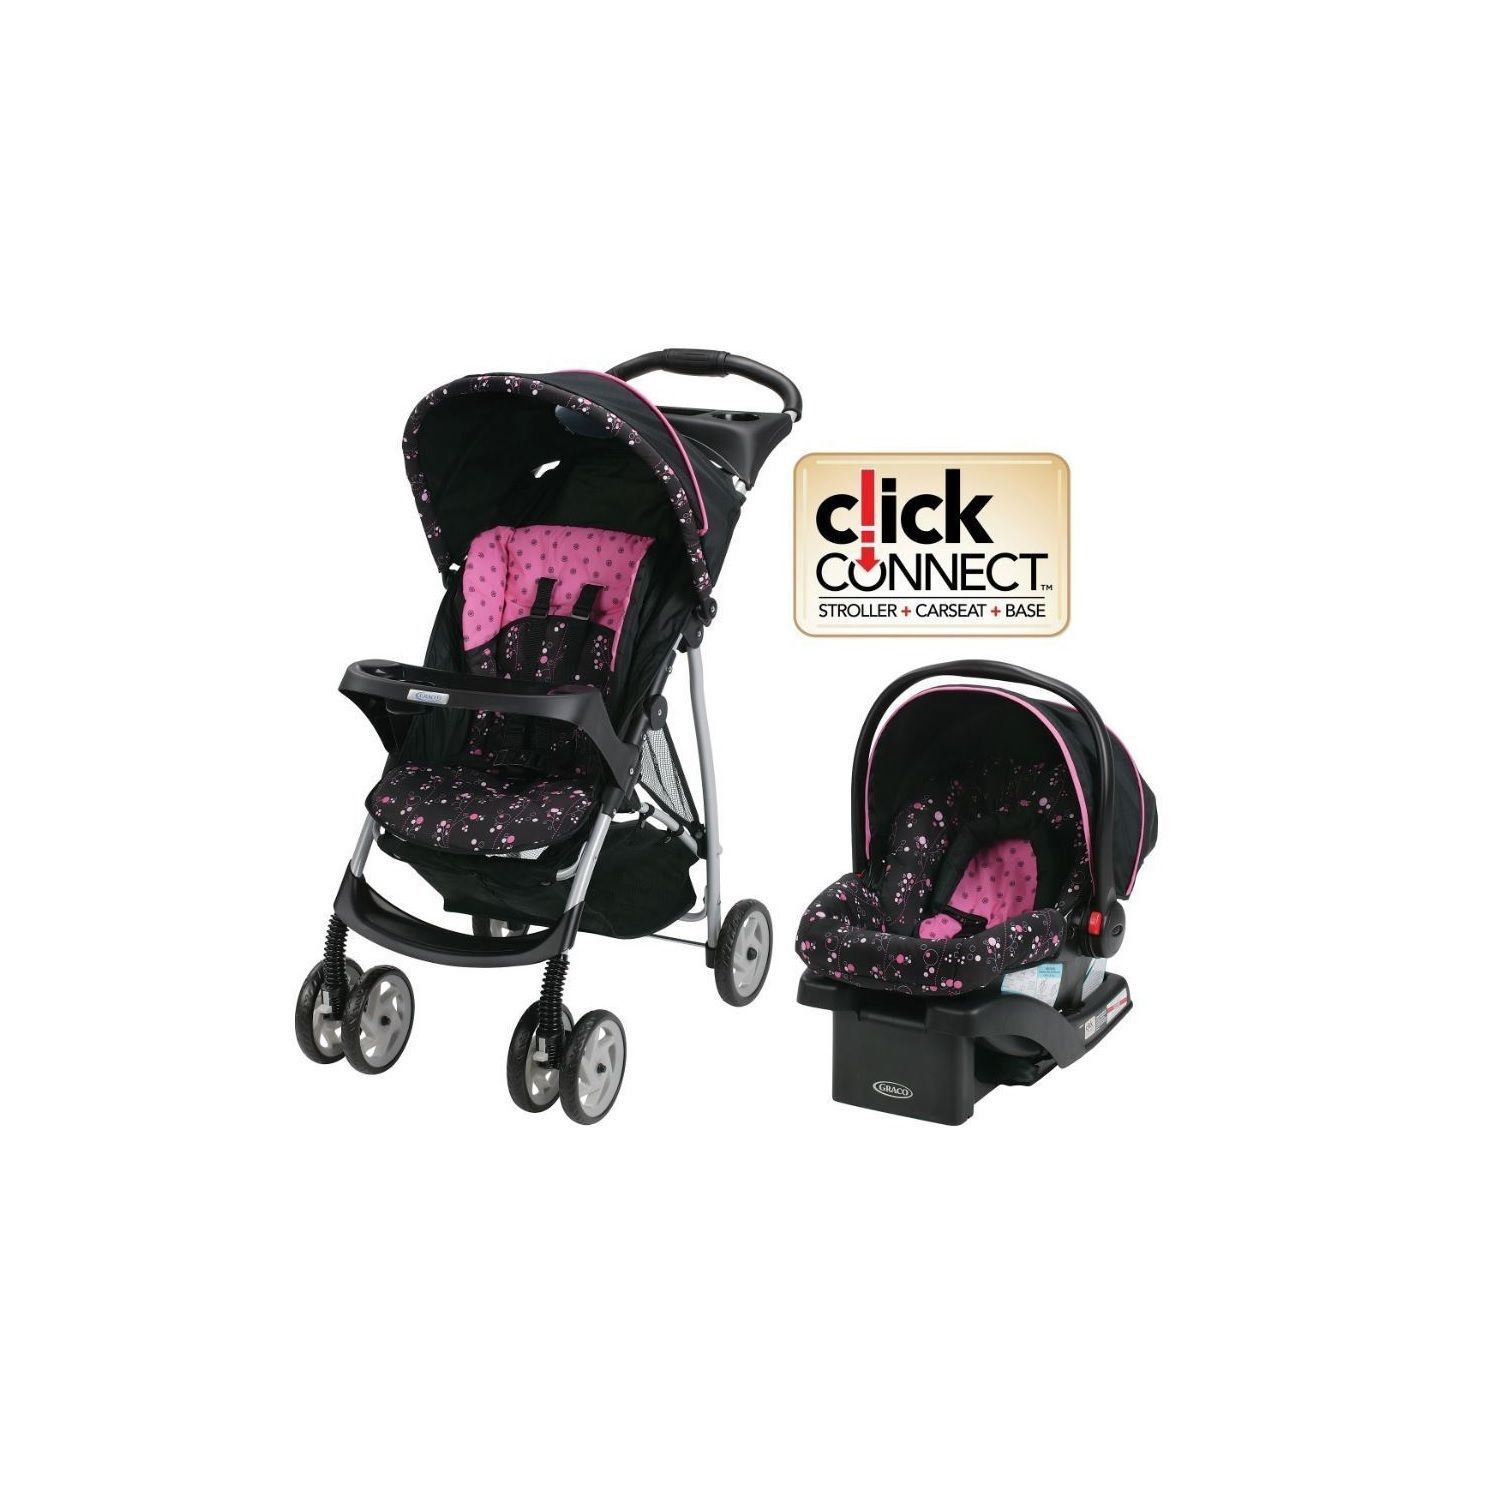 Graco Baby Stroller Car Seat Travel System Infant Toddler Pink Product Description With This And You